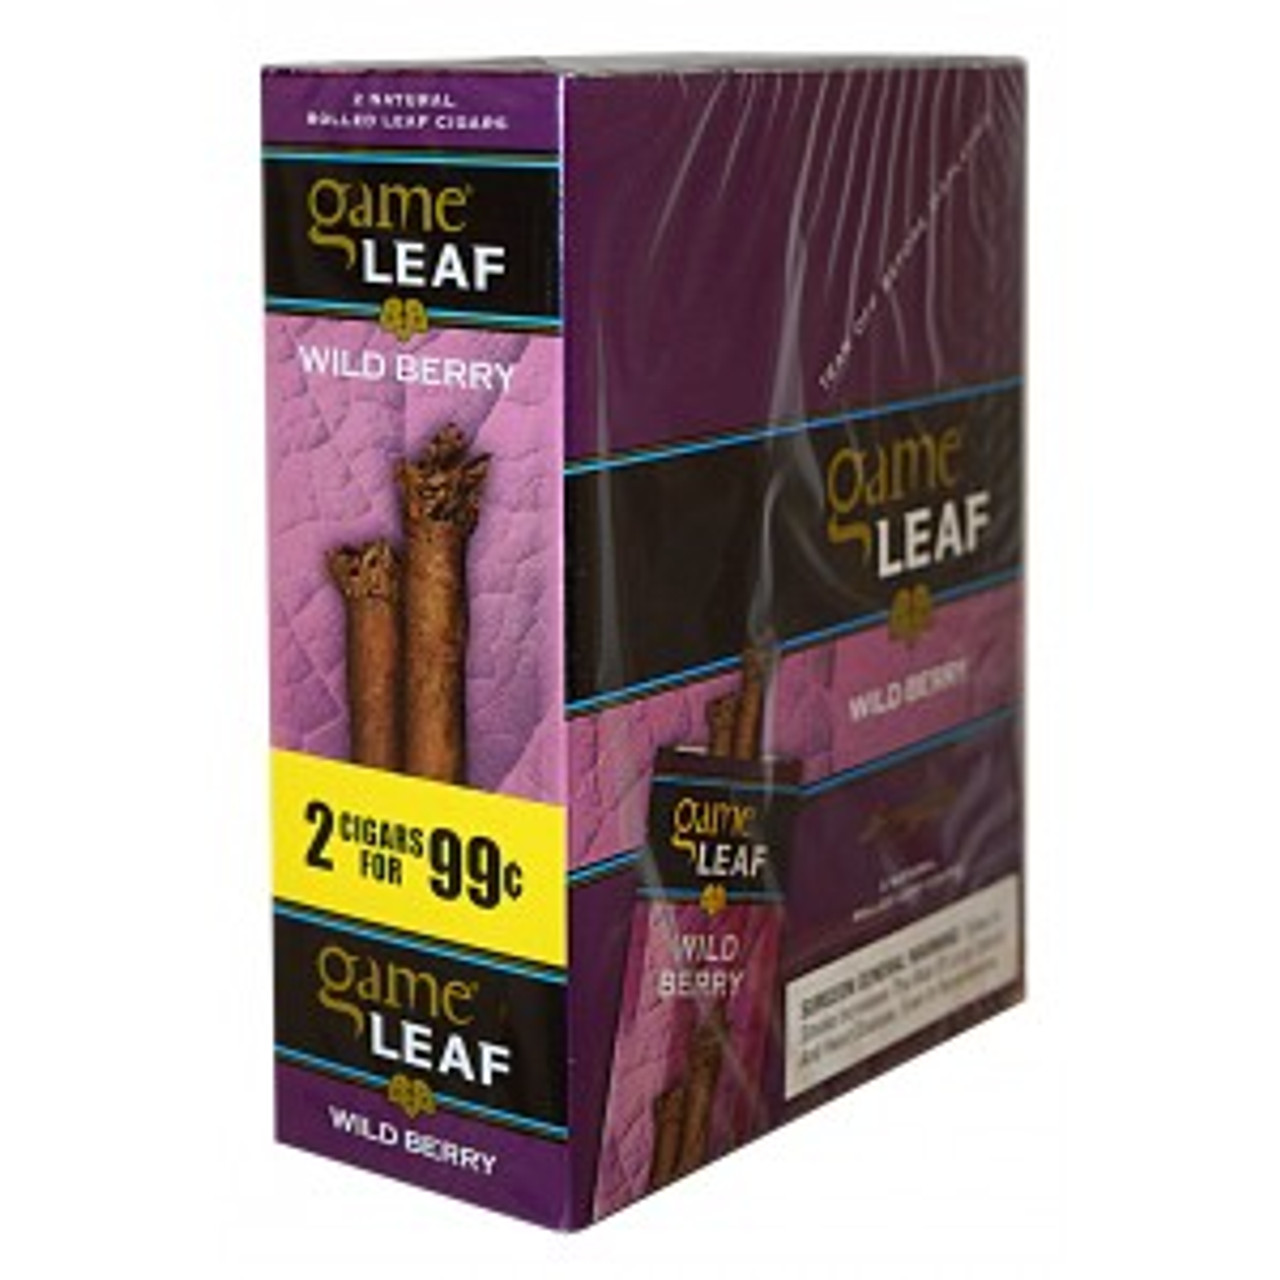 Game Leaf Cigars Wild Berry 152